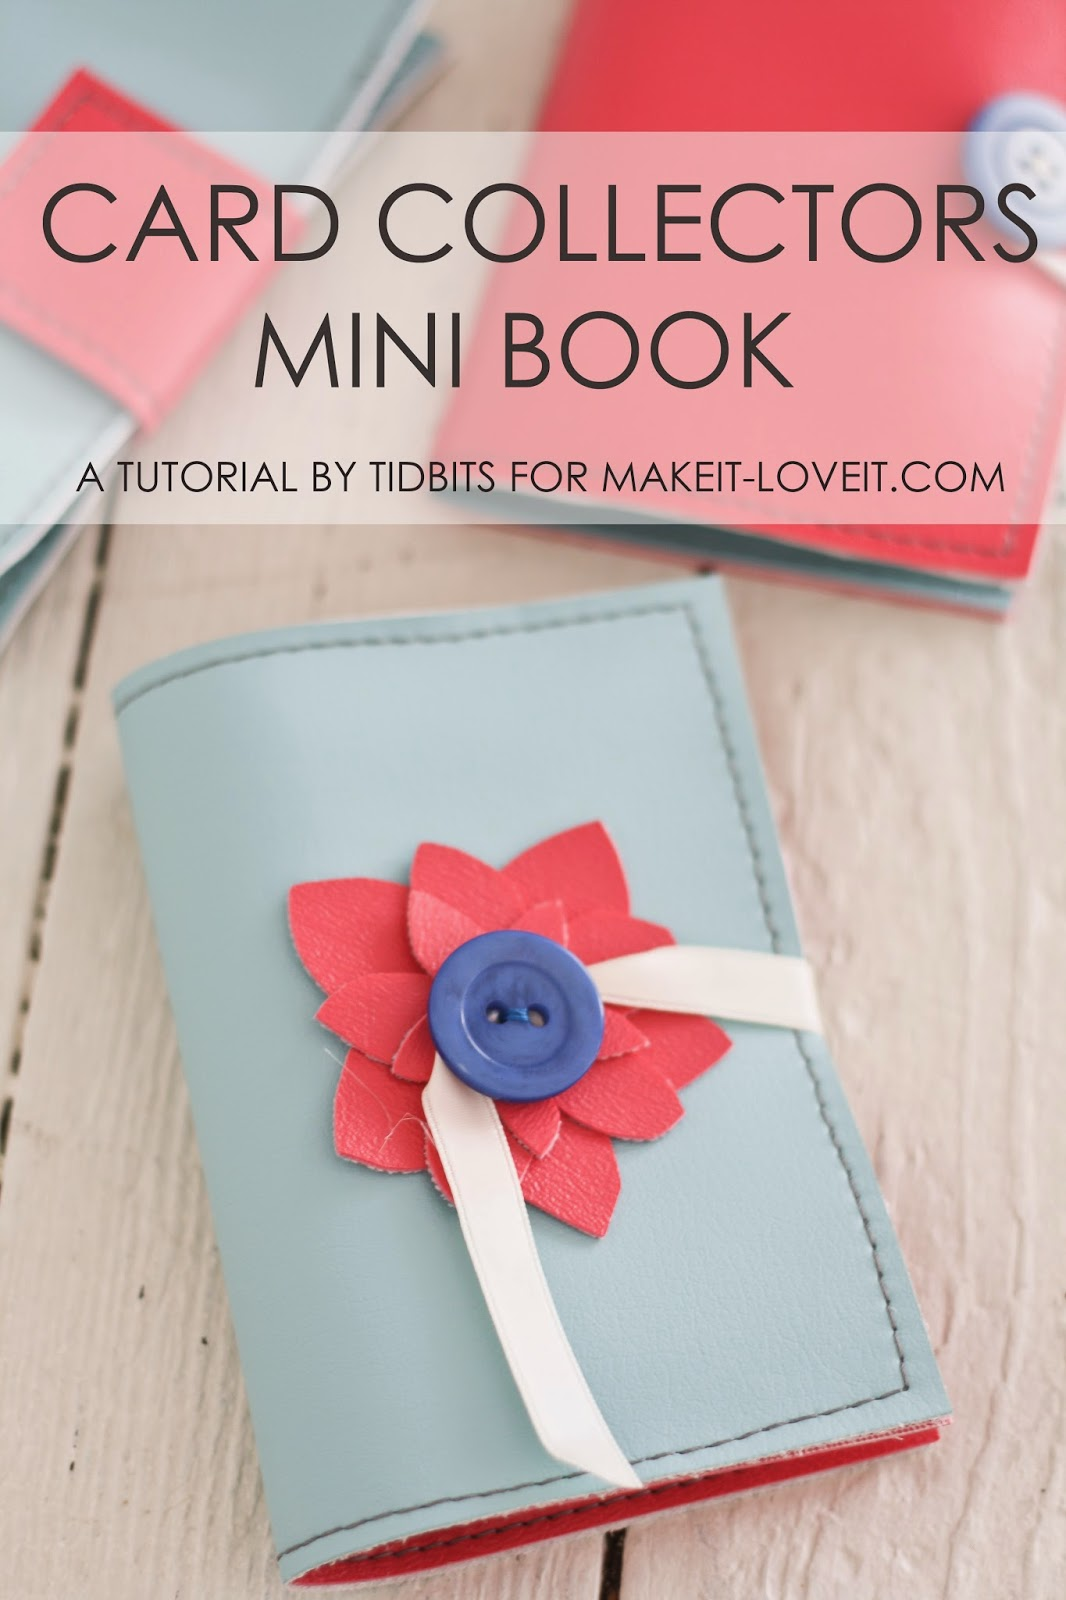 Mini Books for Card Collections (or photos, business cards, etc)